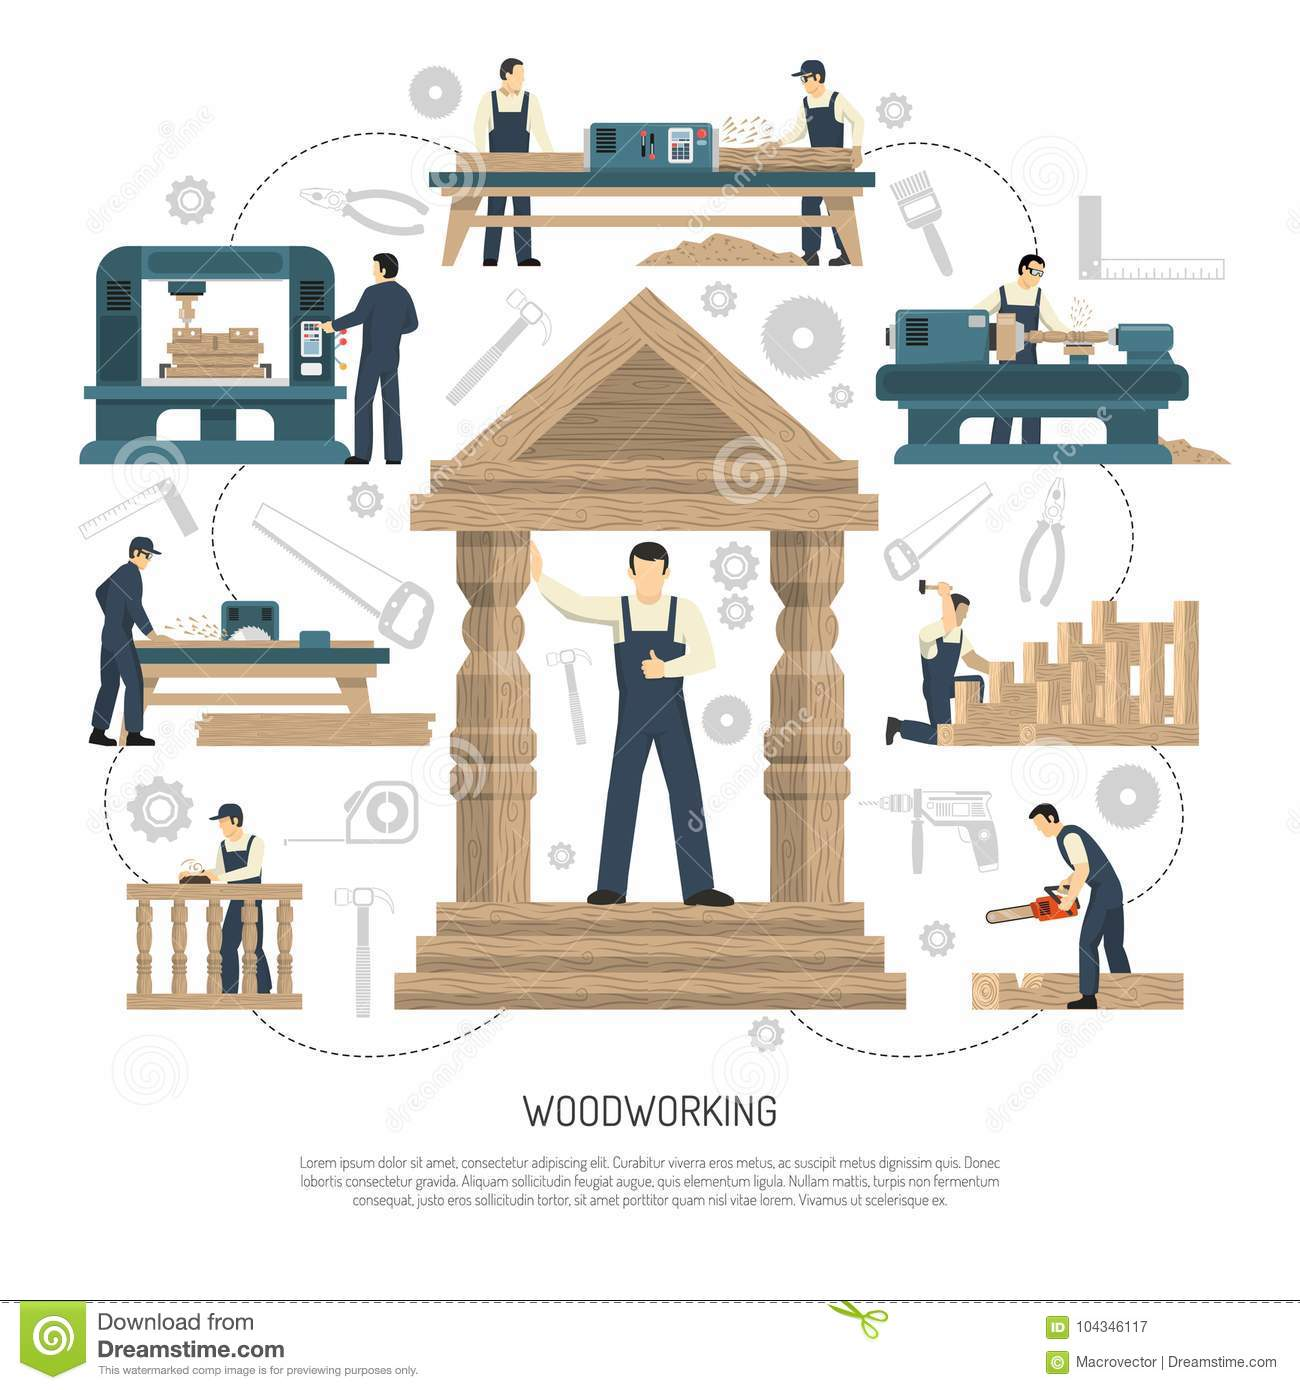 Woodworking People Background Composition